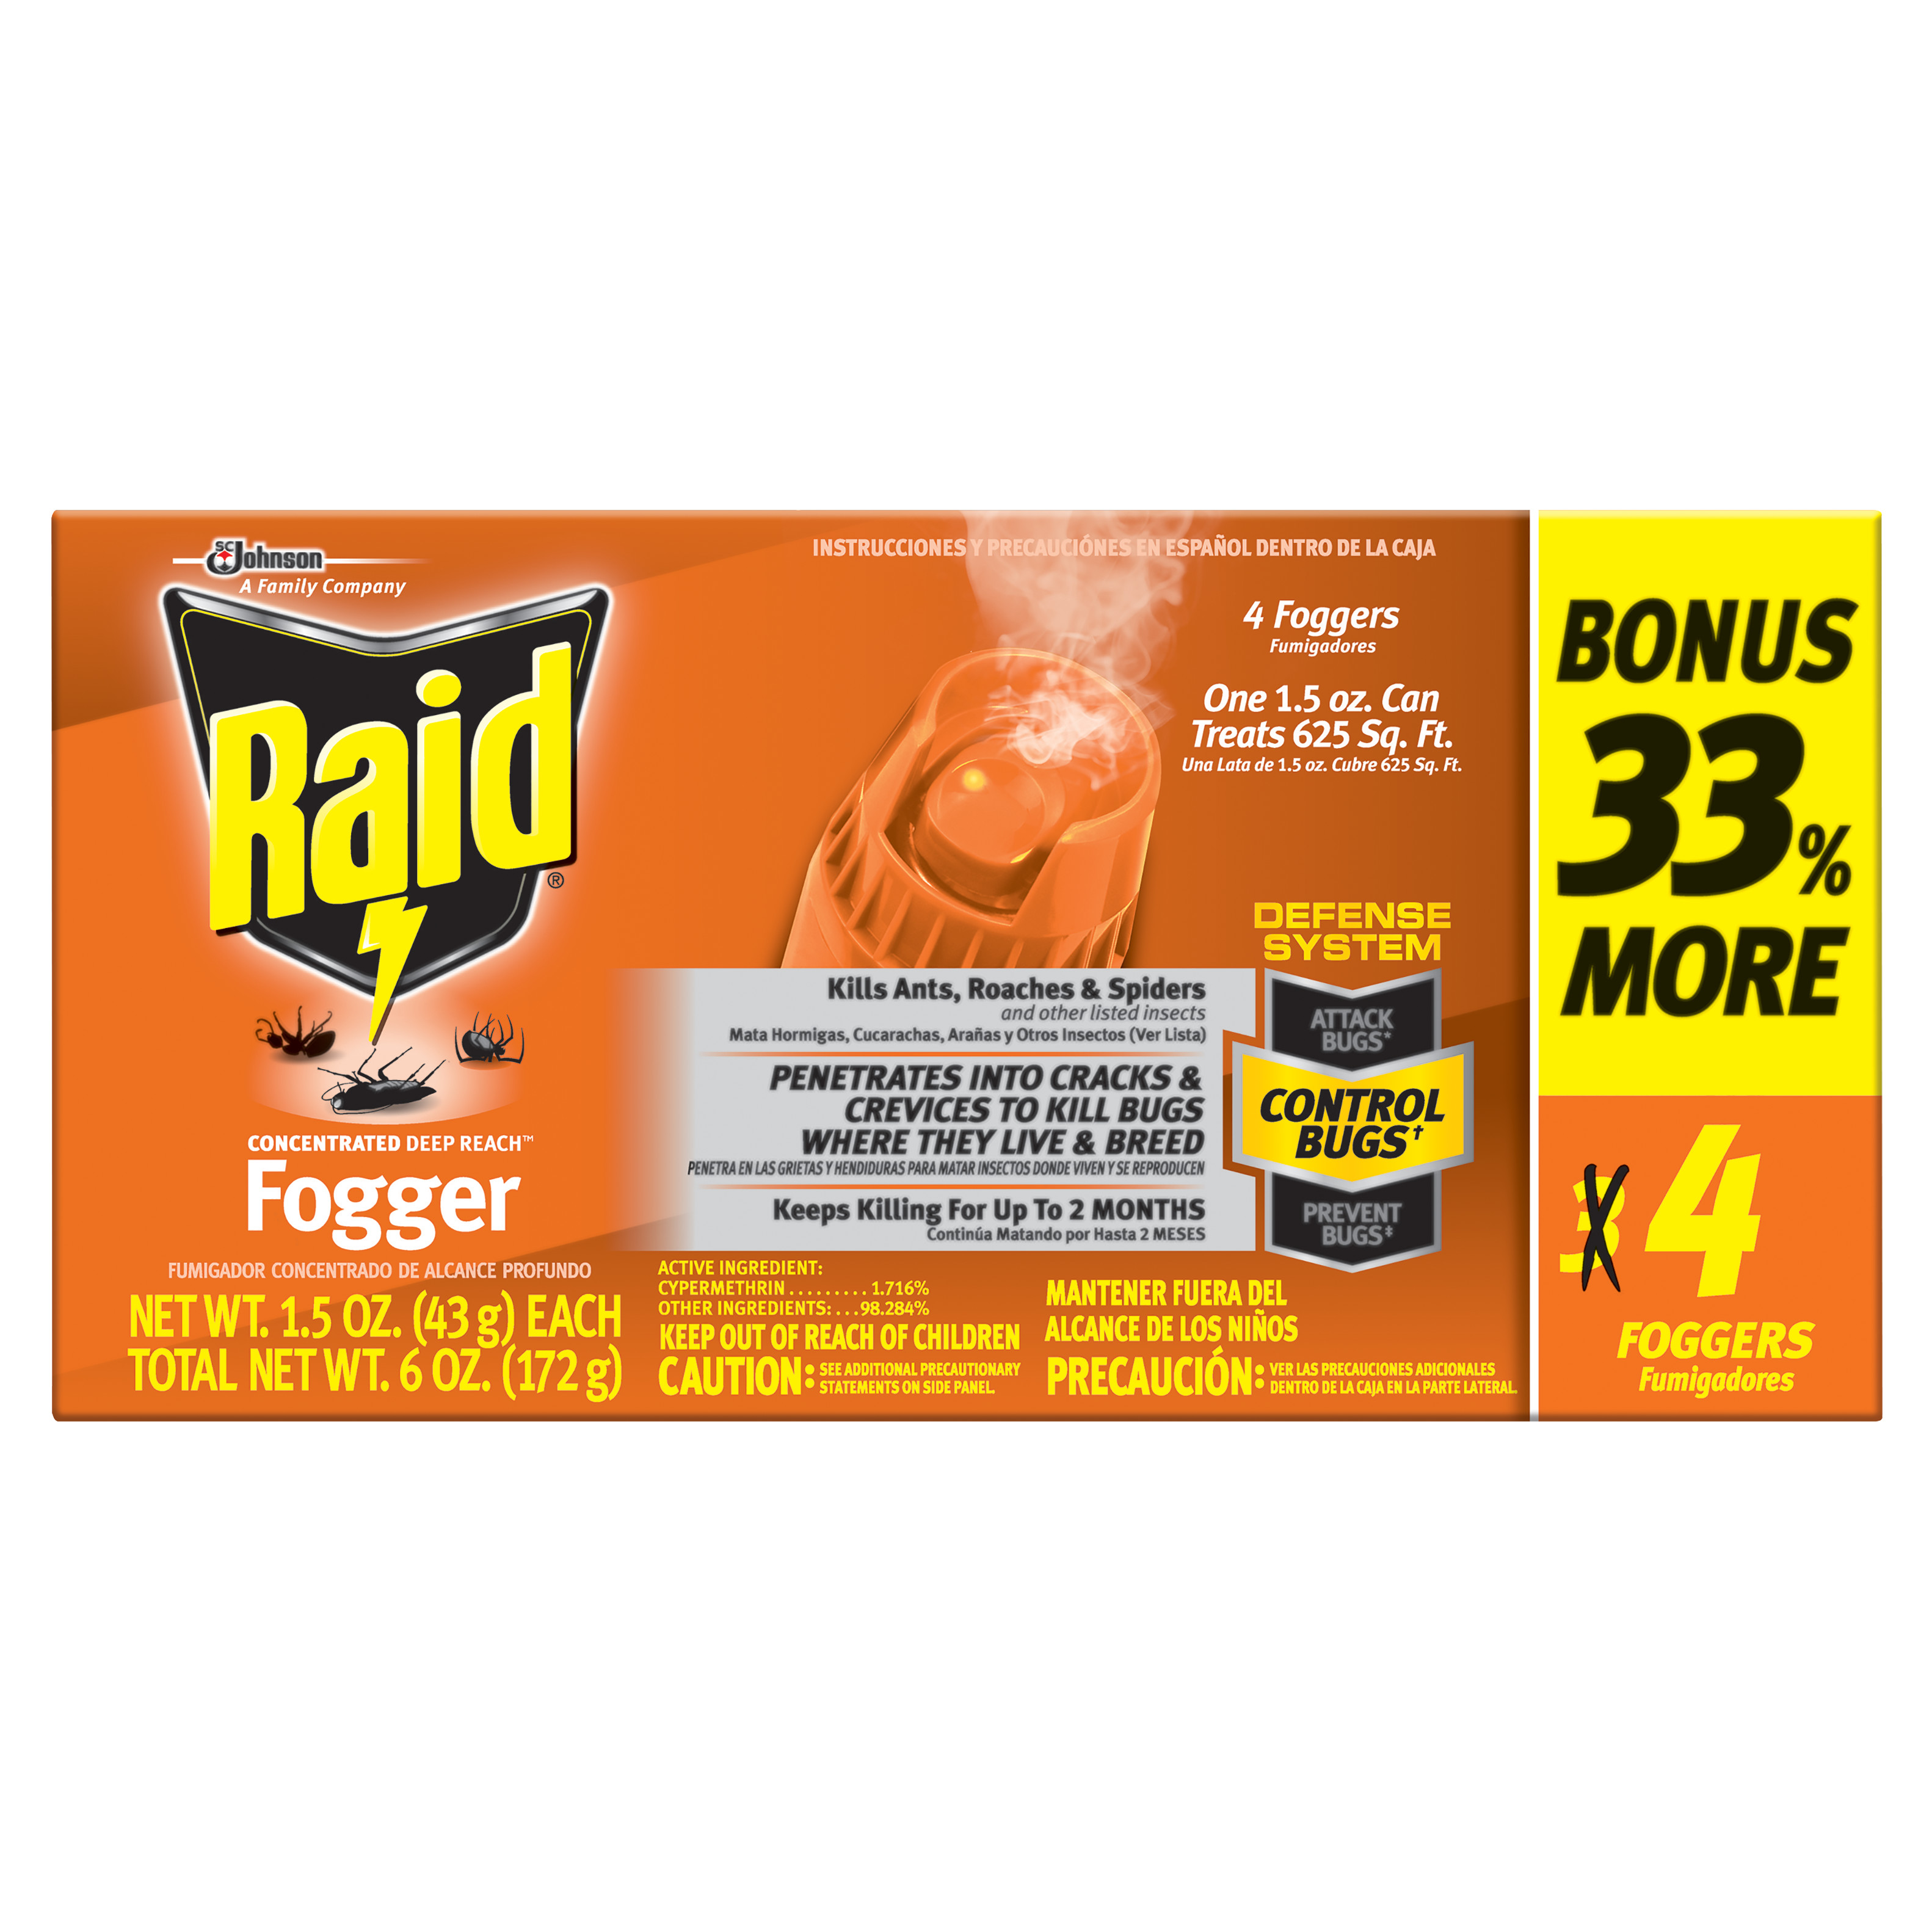 Raid Concentrated Deep Reach Fogger (1.5 Ounces, 4 count)